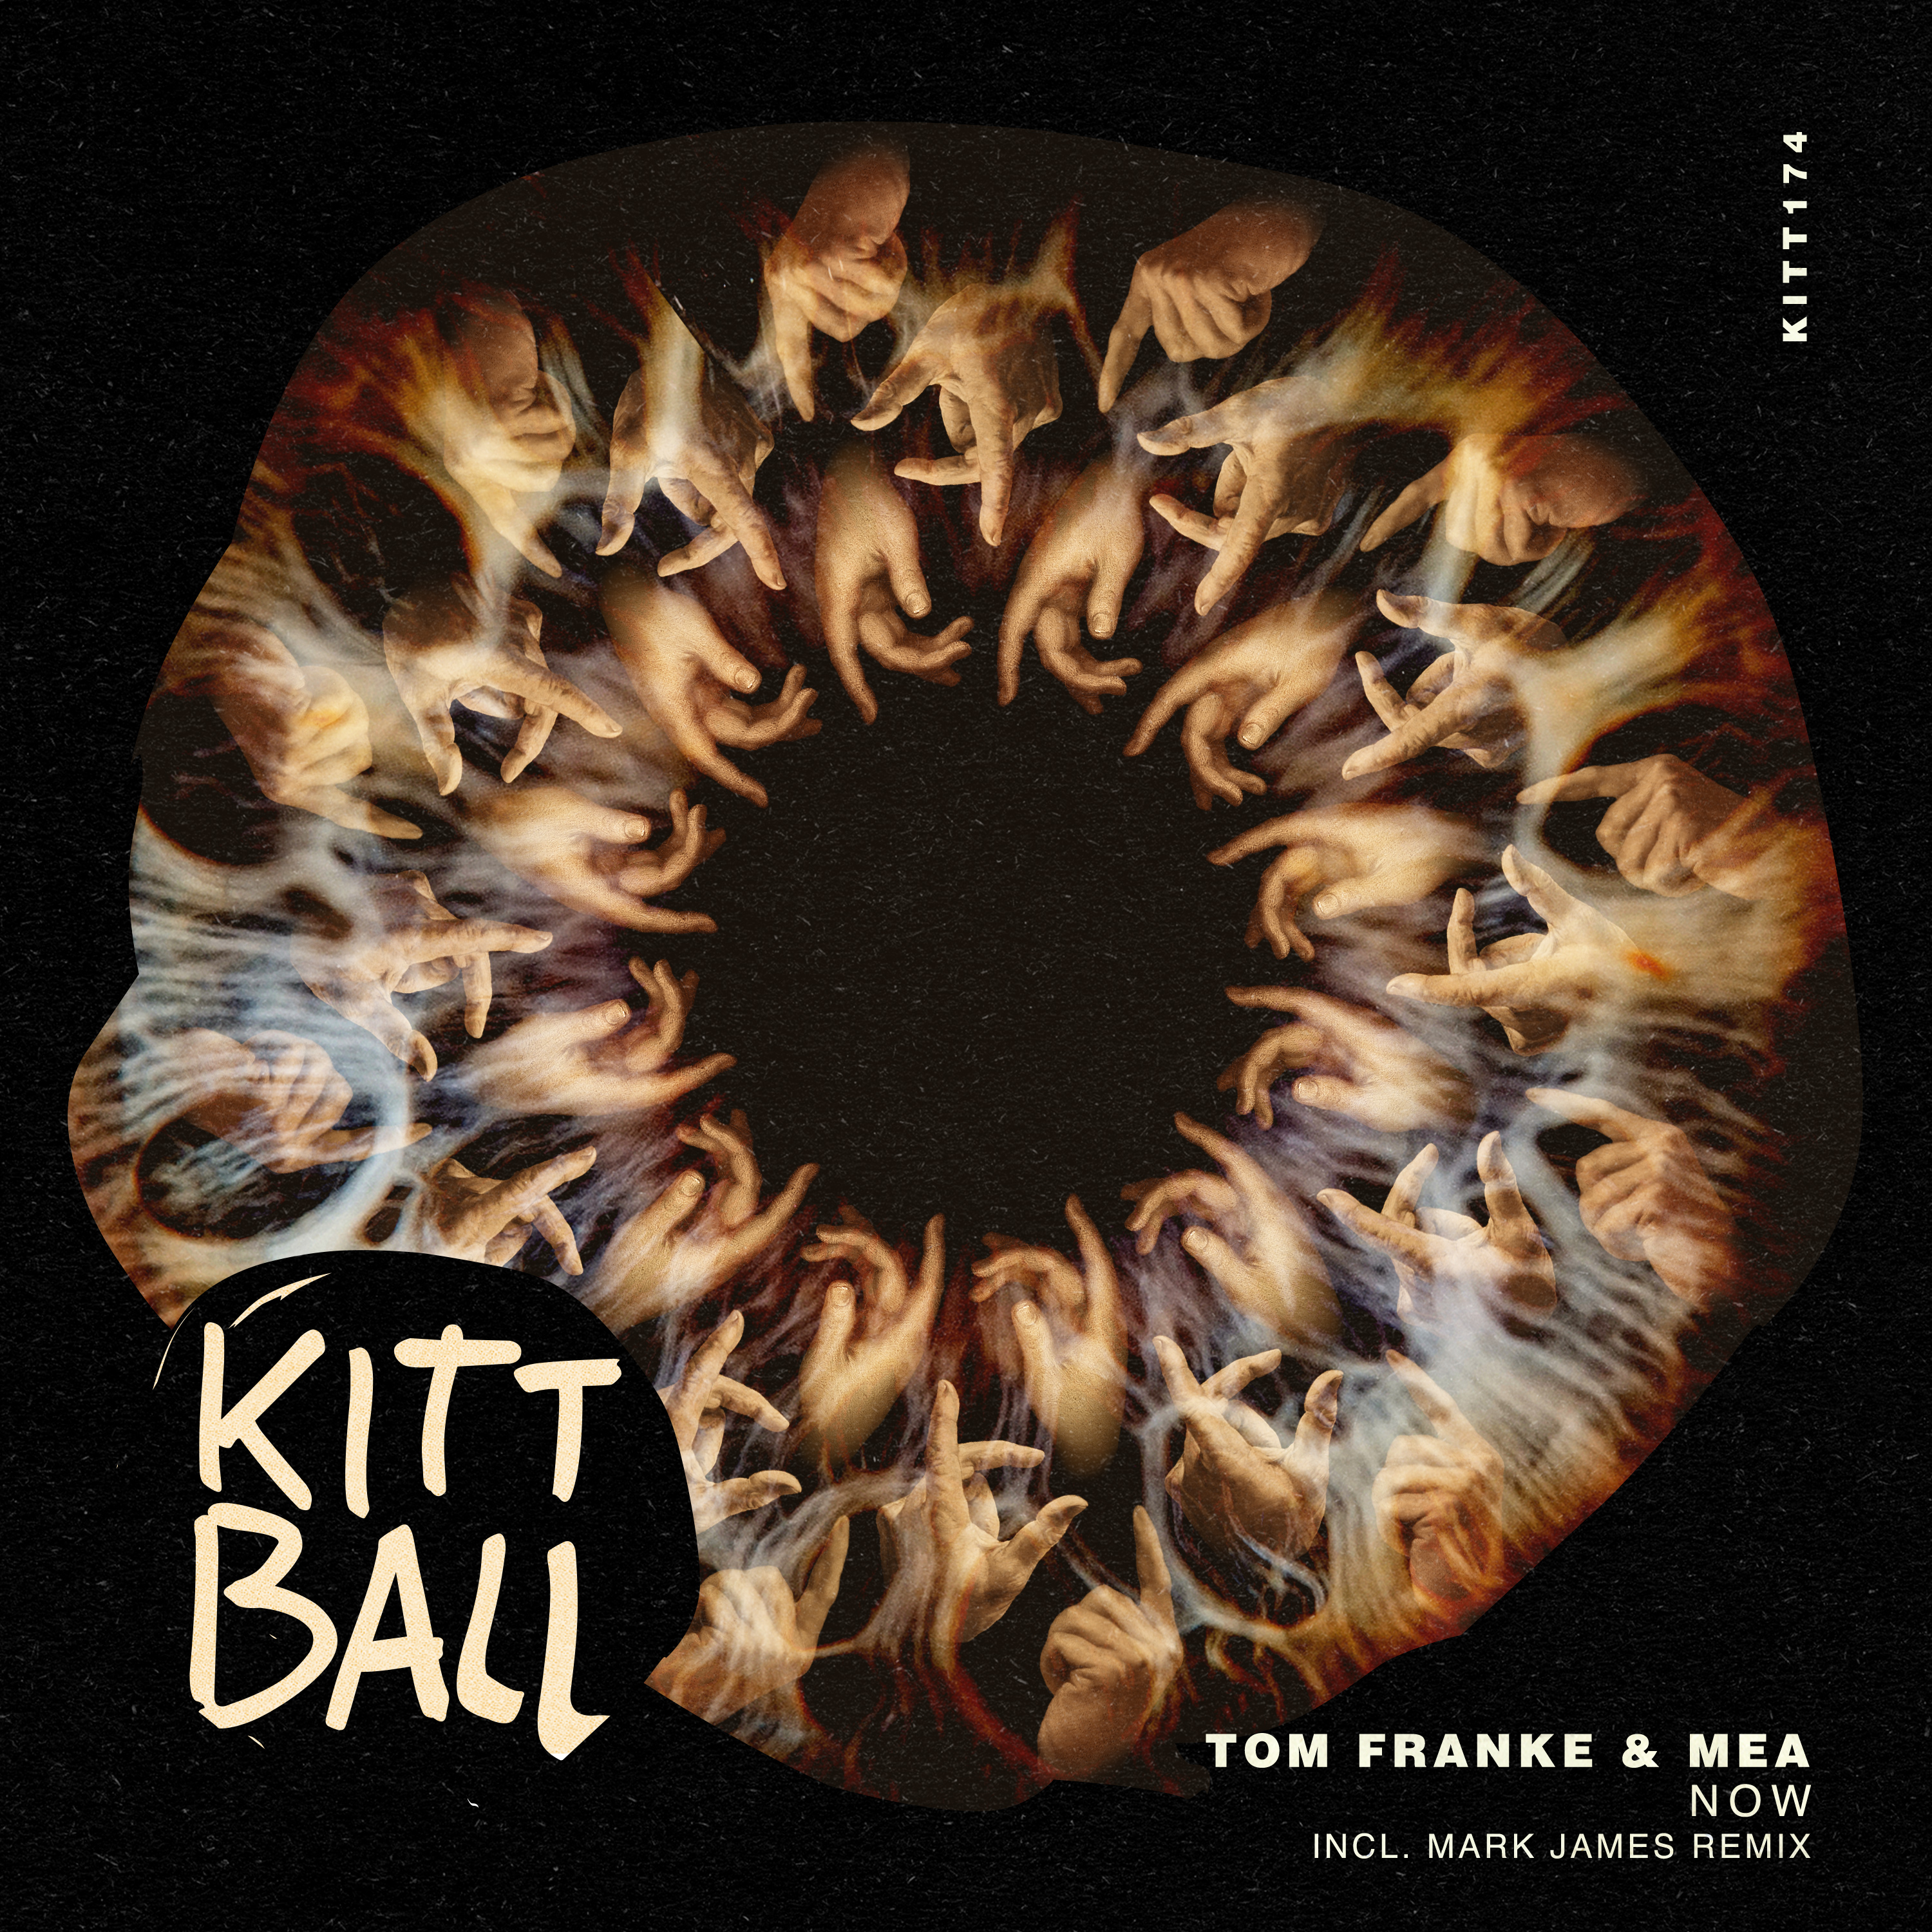 Tom Franke & Mea - Now Cover design artwork